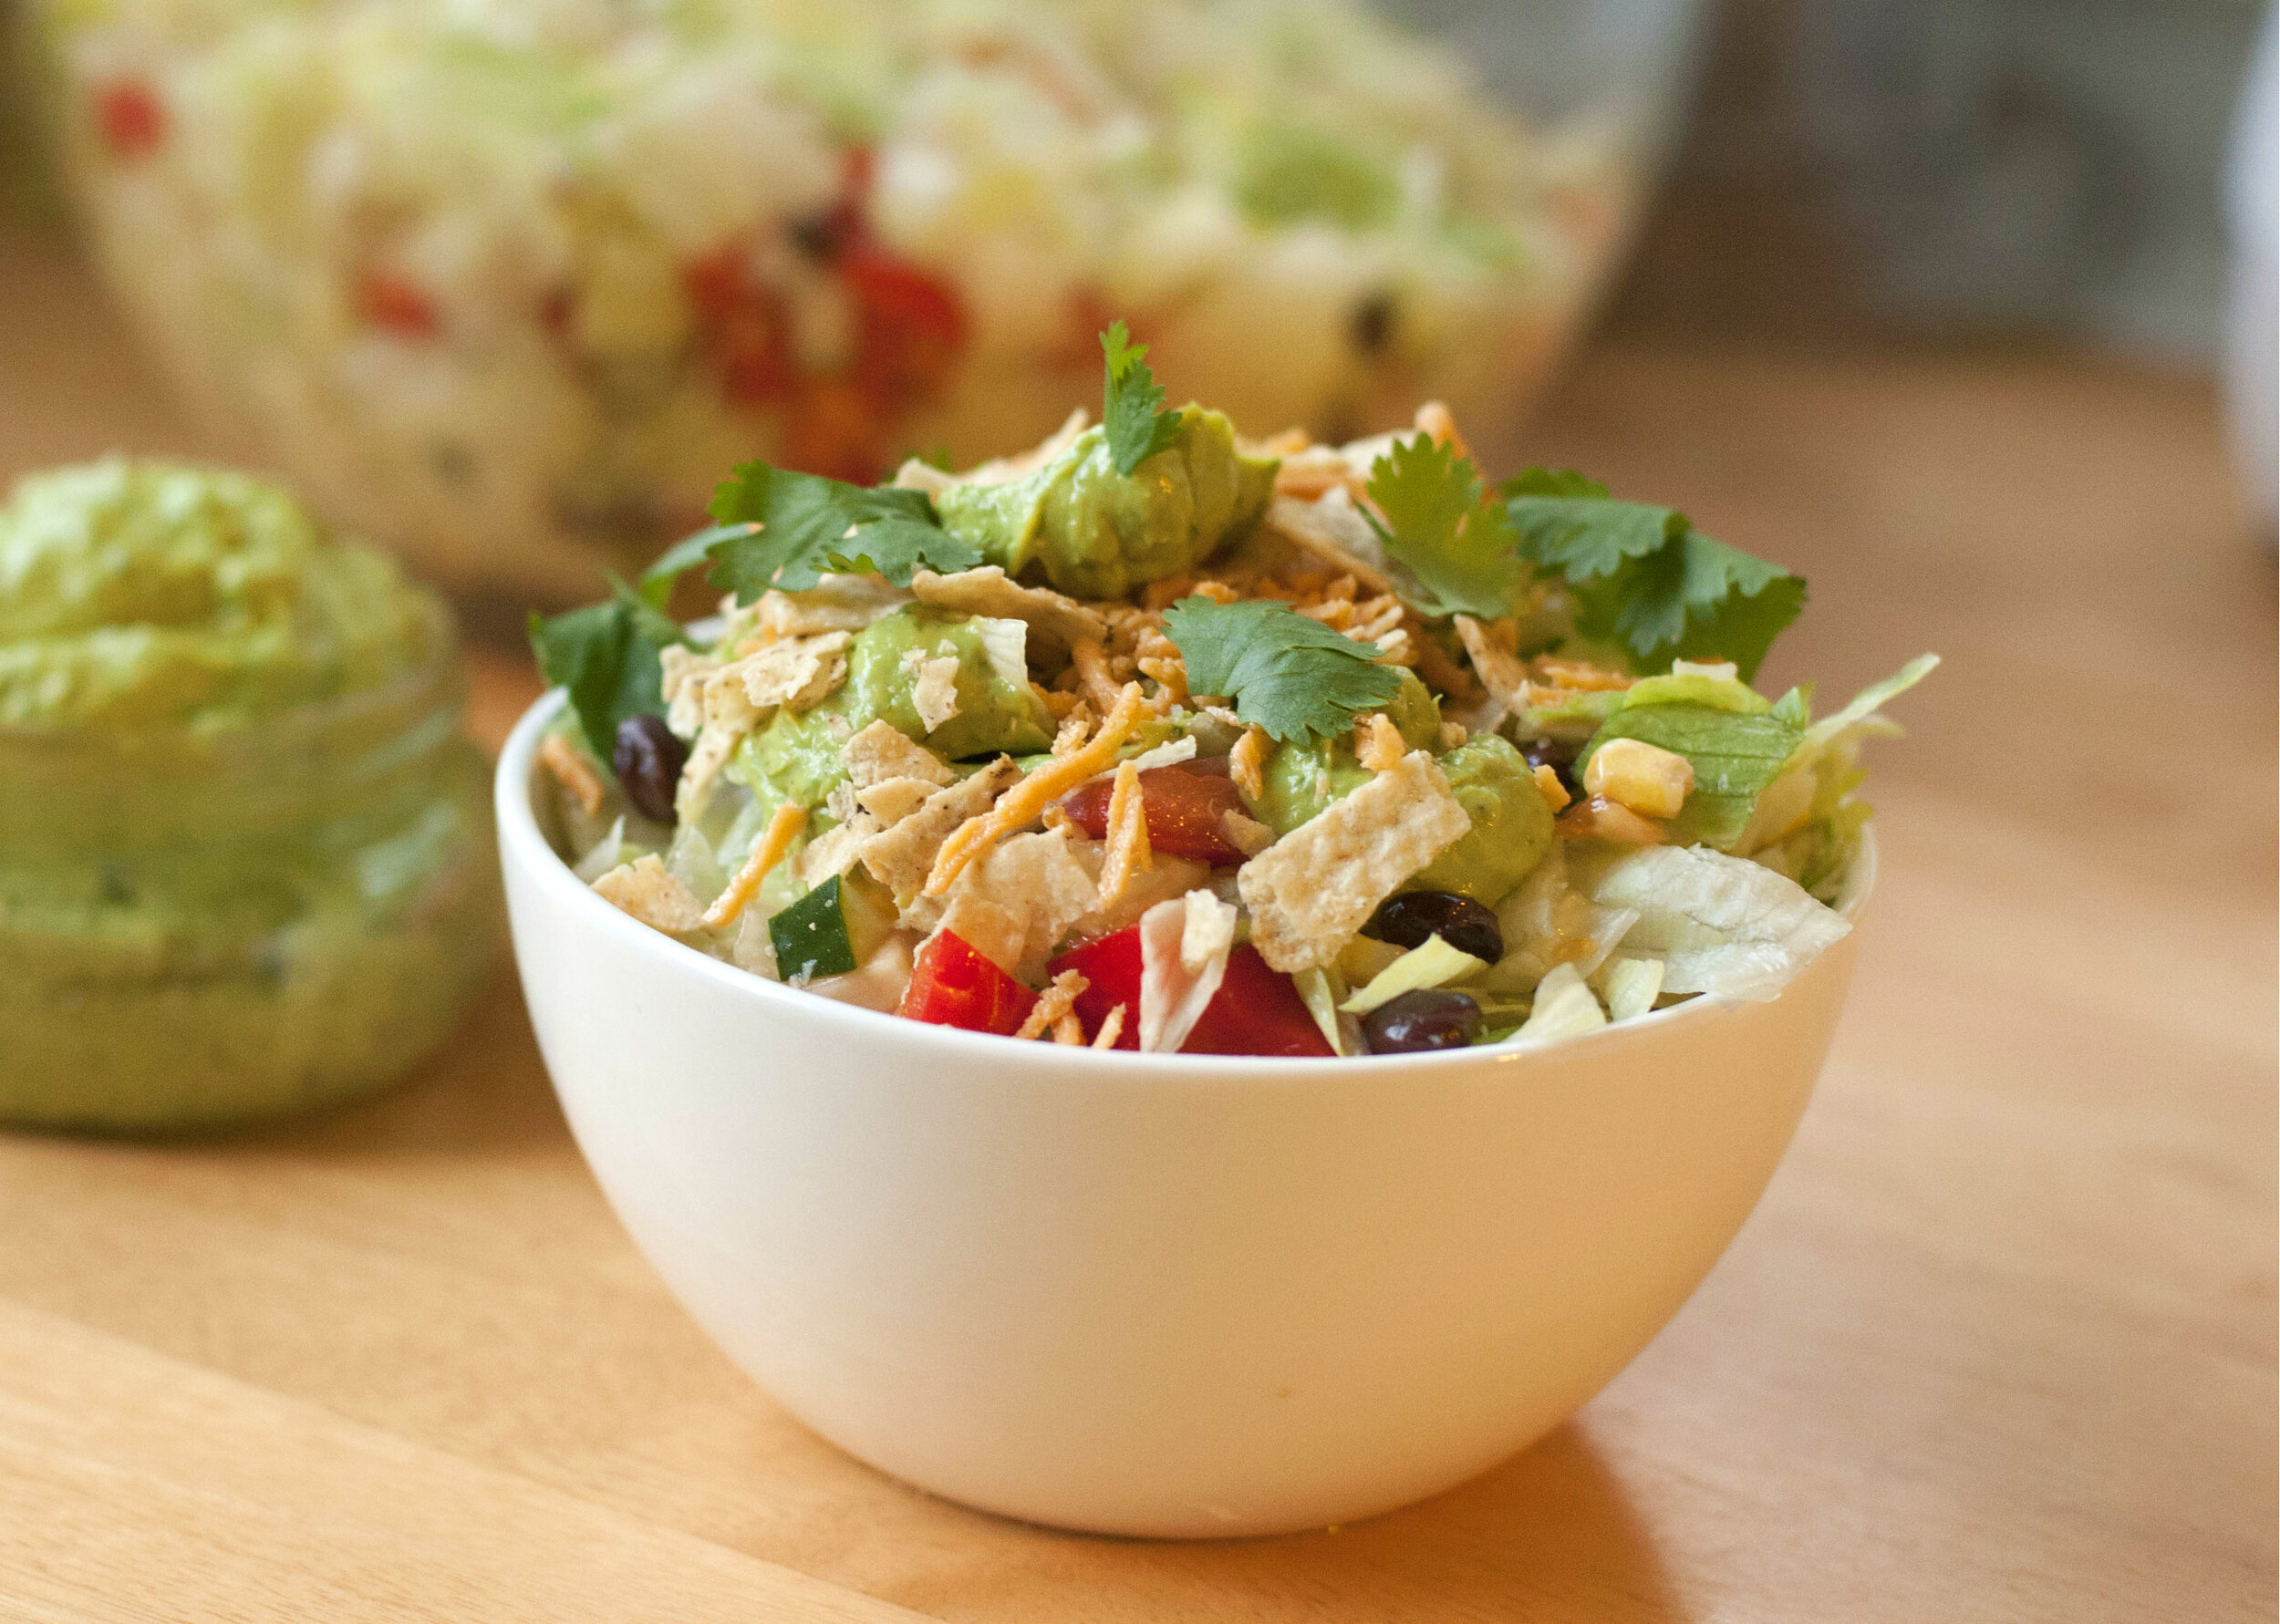 Southwestern Avocado Ranch Salad